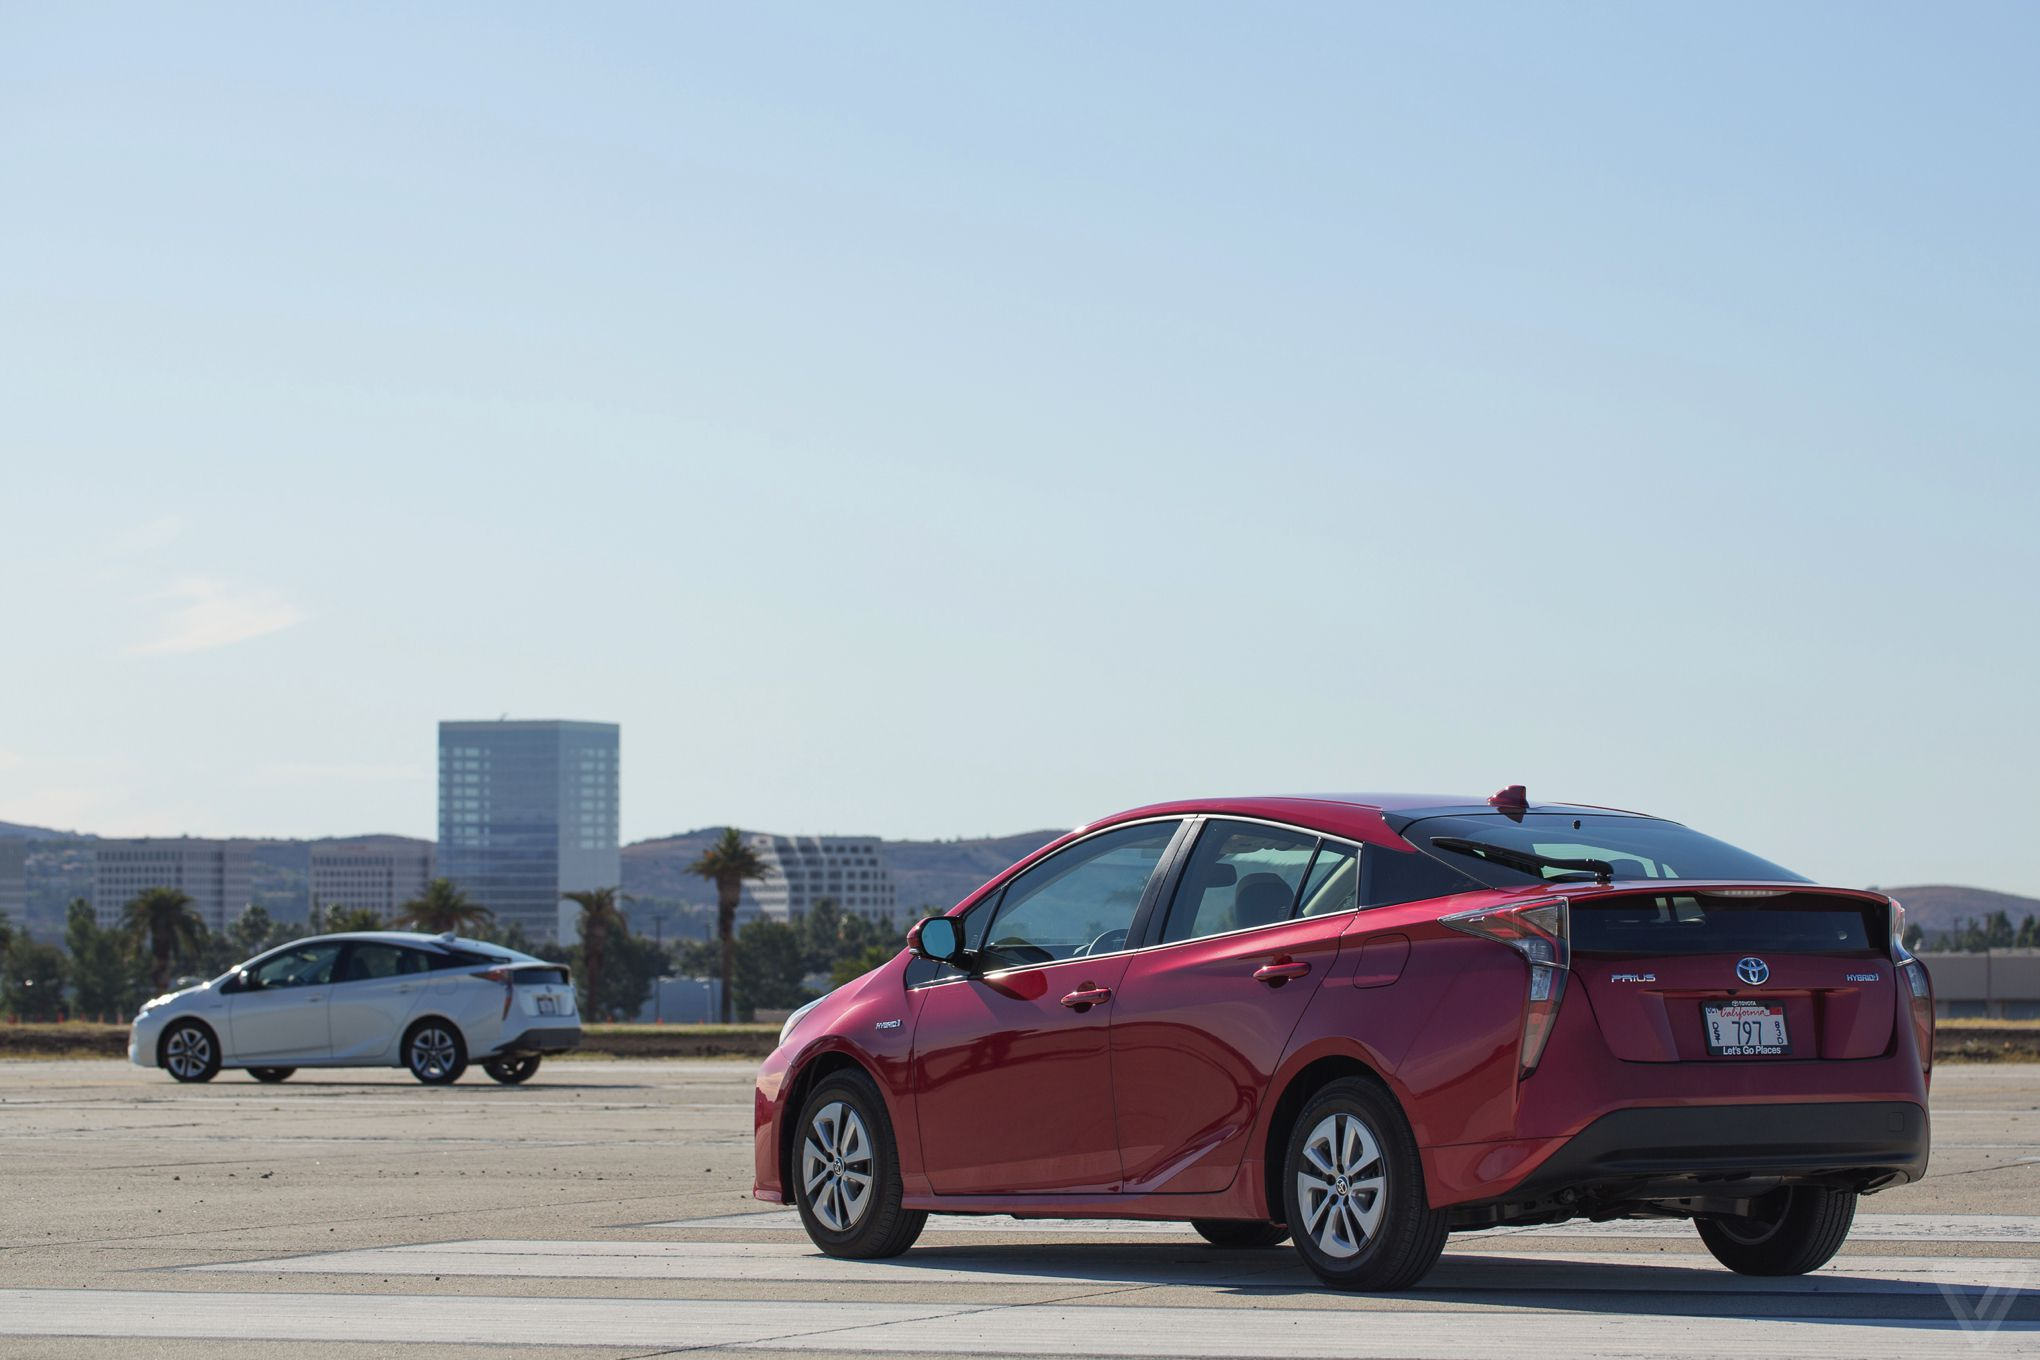 the new toyota prius isn t just a good hybrid it s a good car for toyota it means sitting back and relying on the prius to sell cars isn t going to work anymore that s why the company has totally revamped the